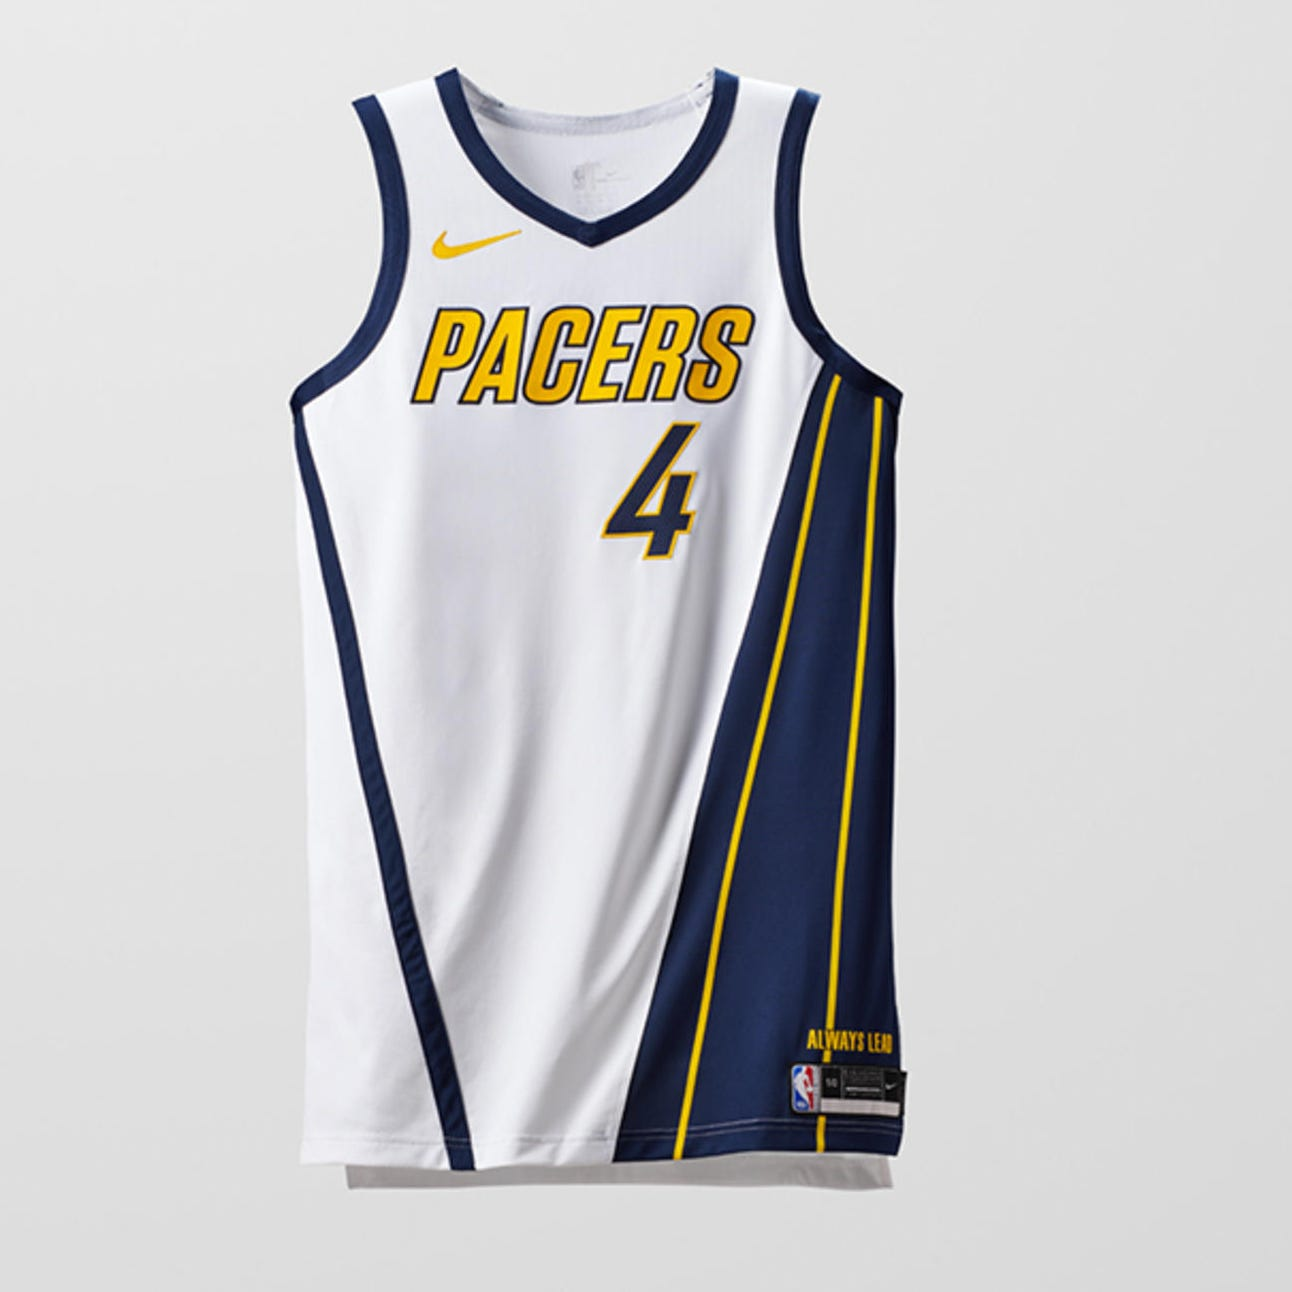 NBA awards Indiana Pacers, 2018 playoff teams with Earned Edition uniforms